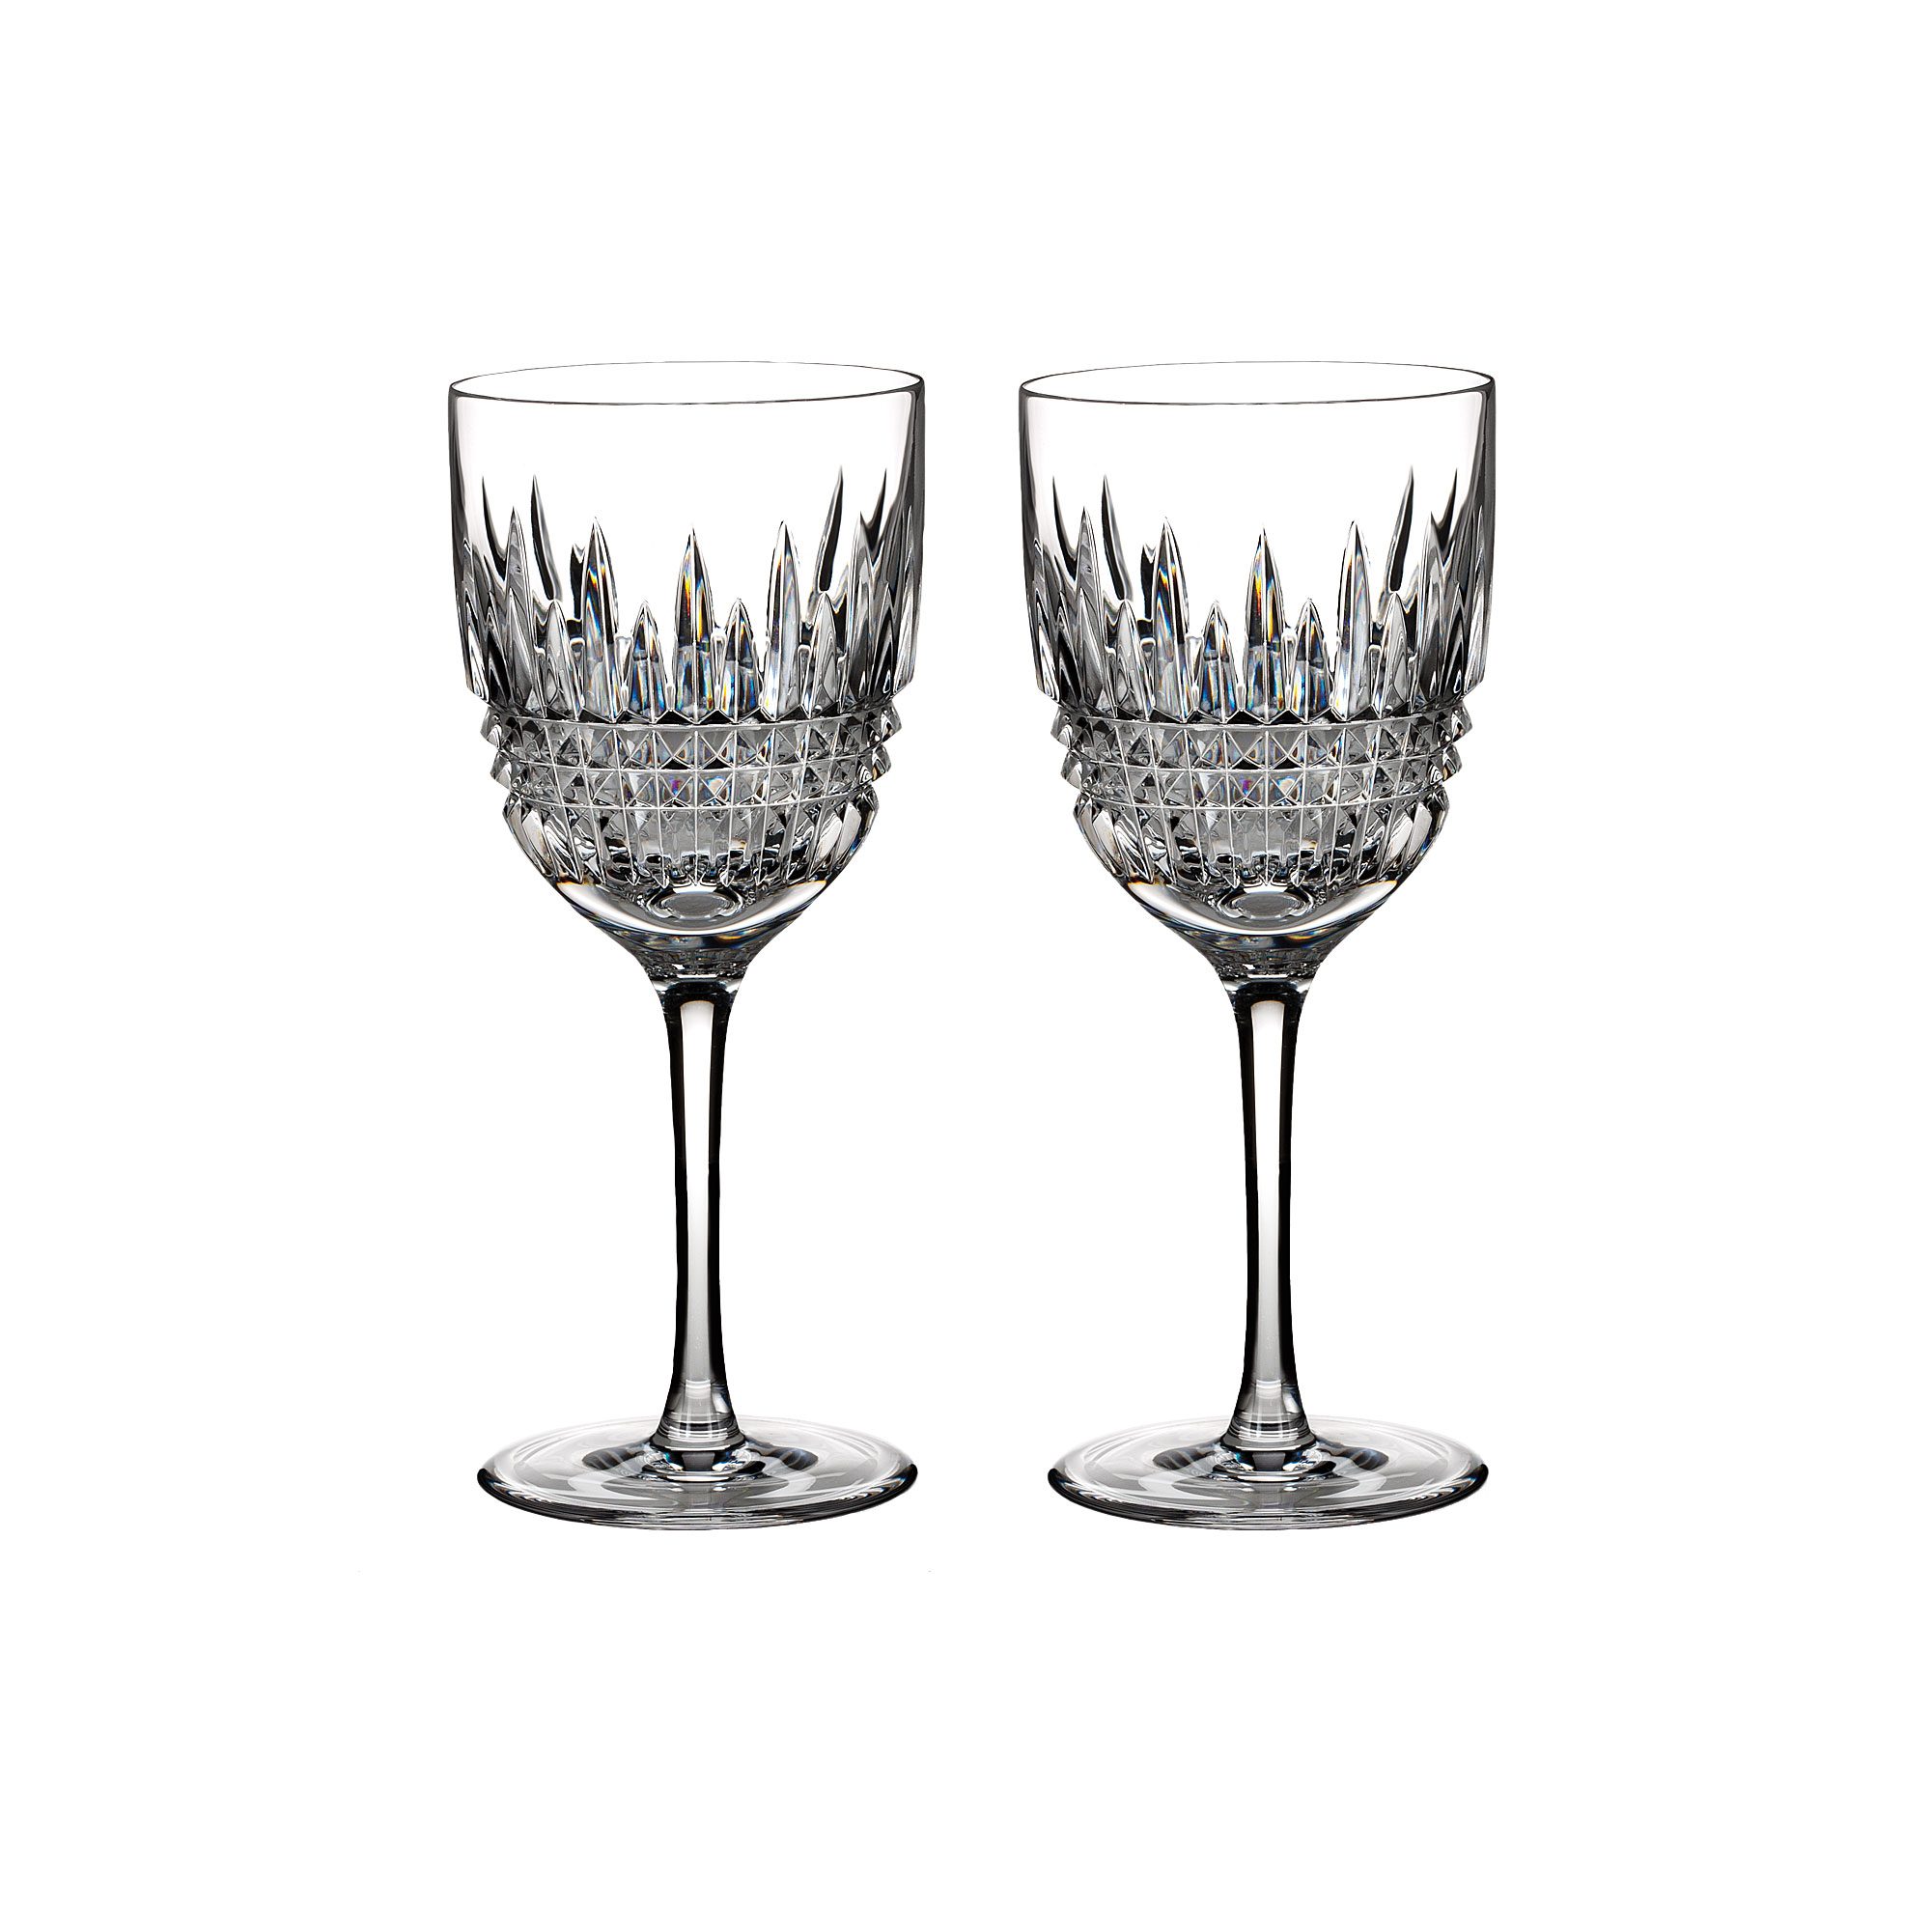 Waterford Crystal, Lismore Diamond Goblet, Red Wine, Pair